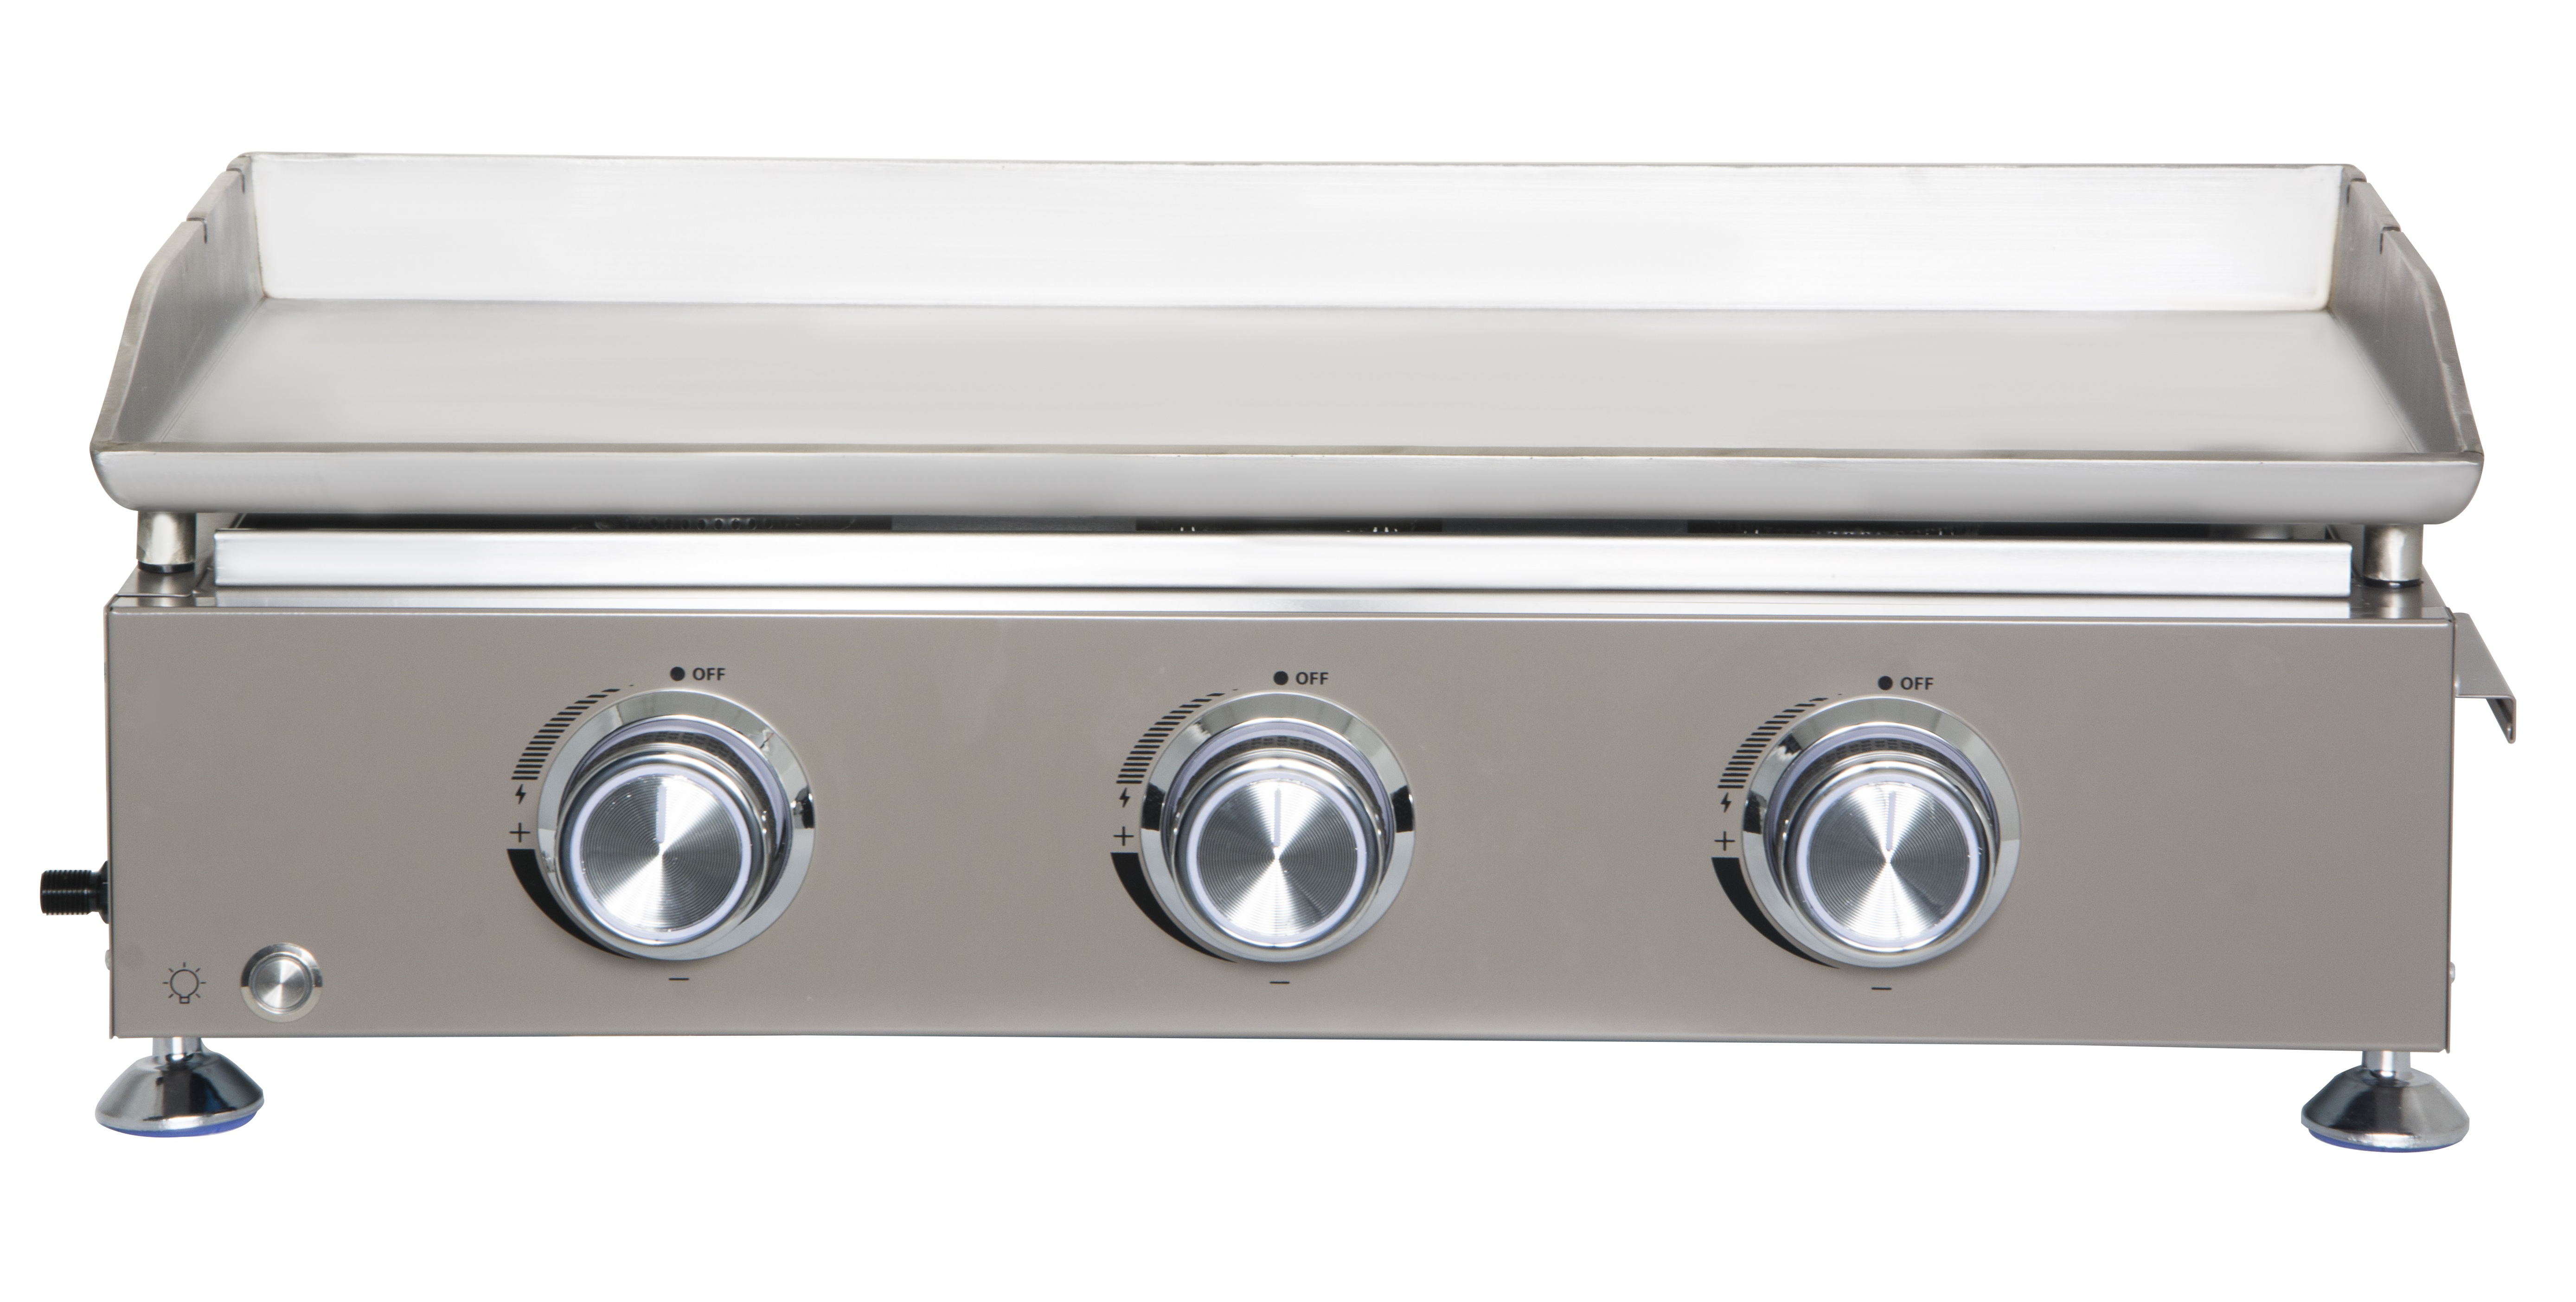 Patio 3 Burner Griddle Grill